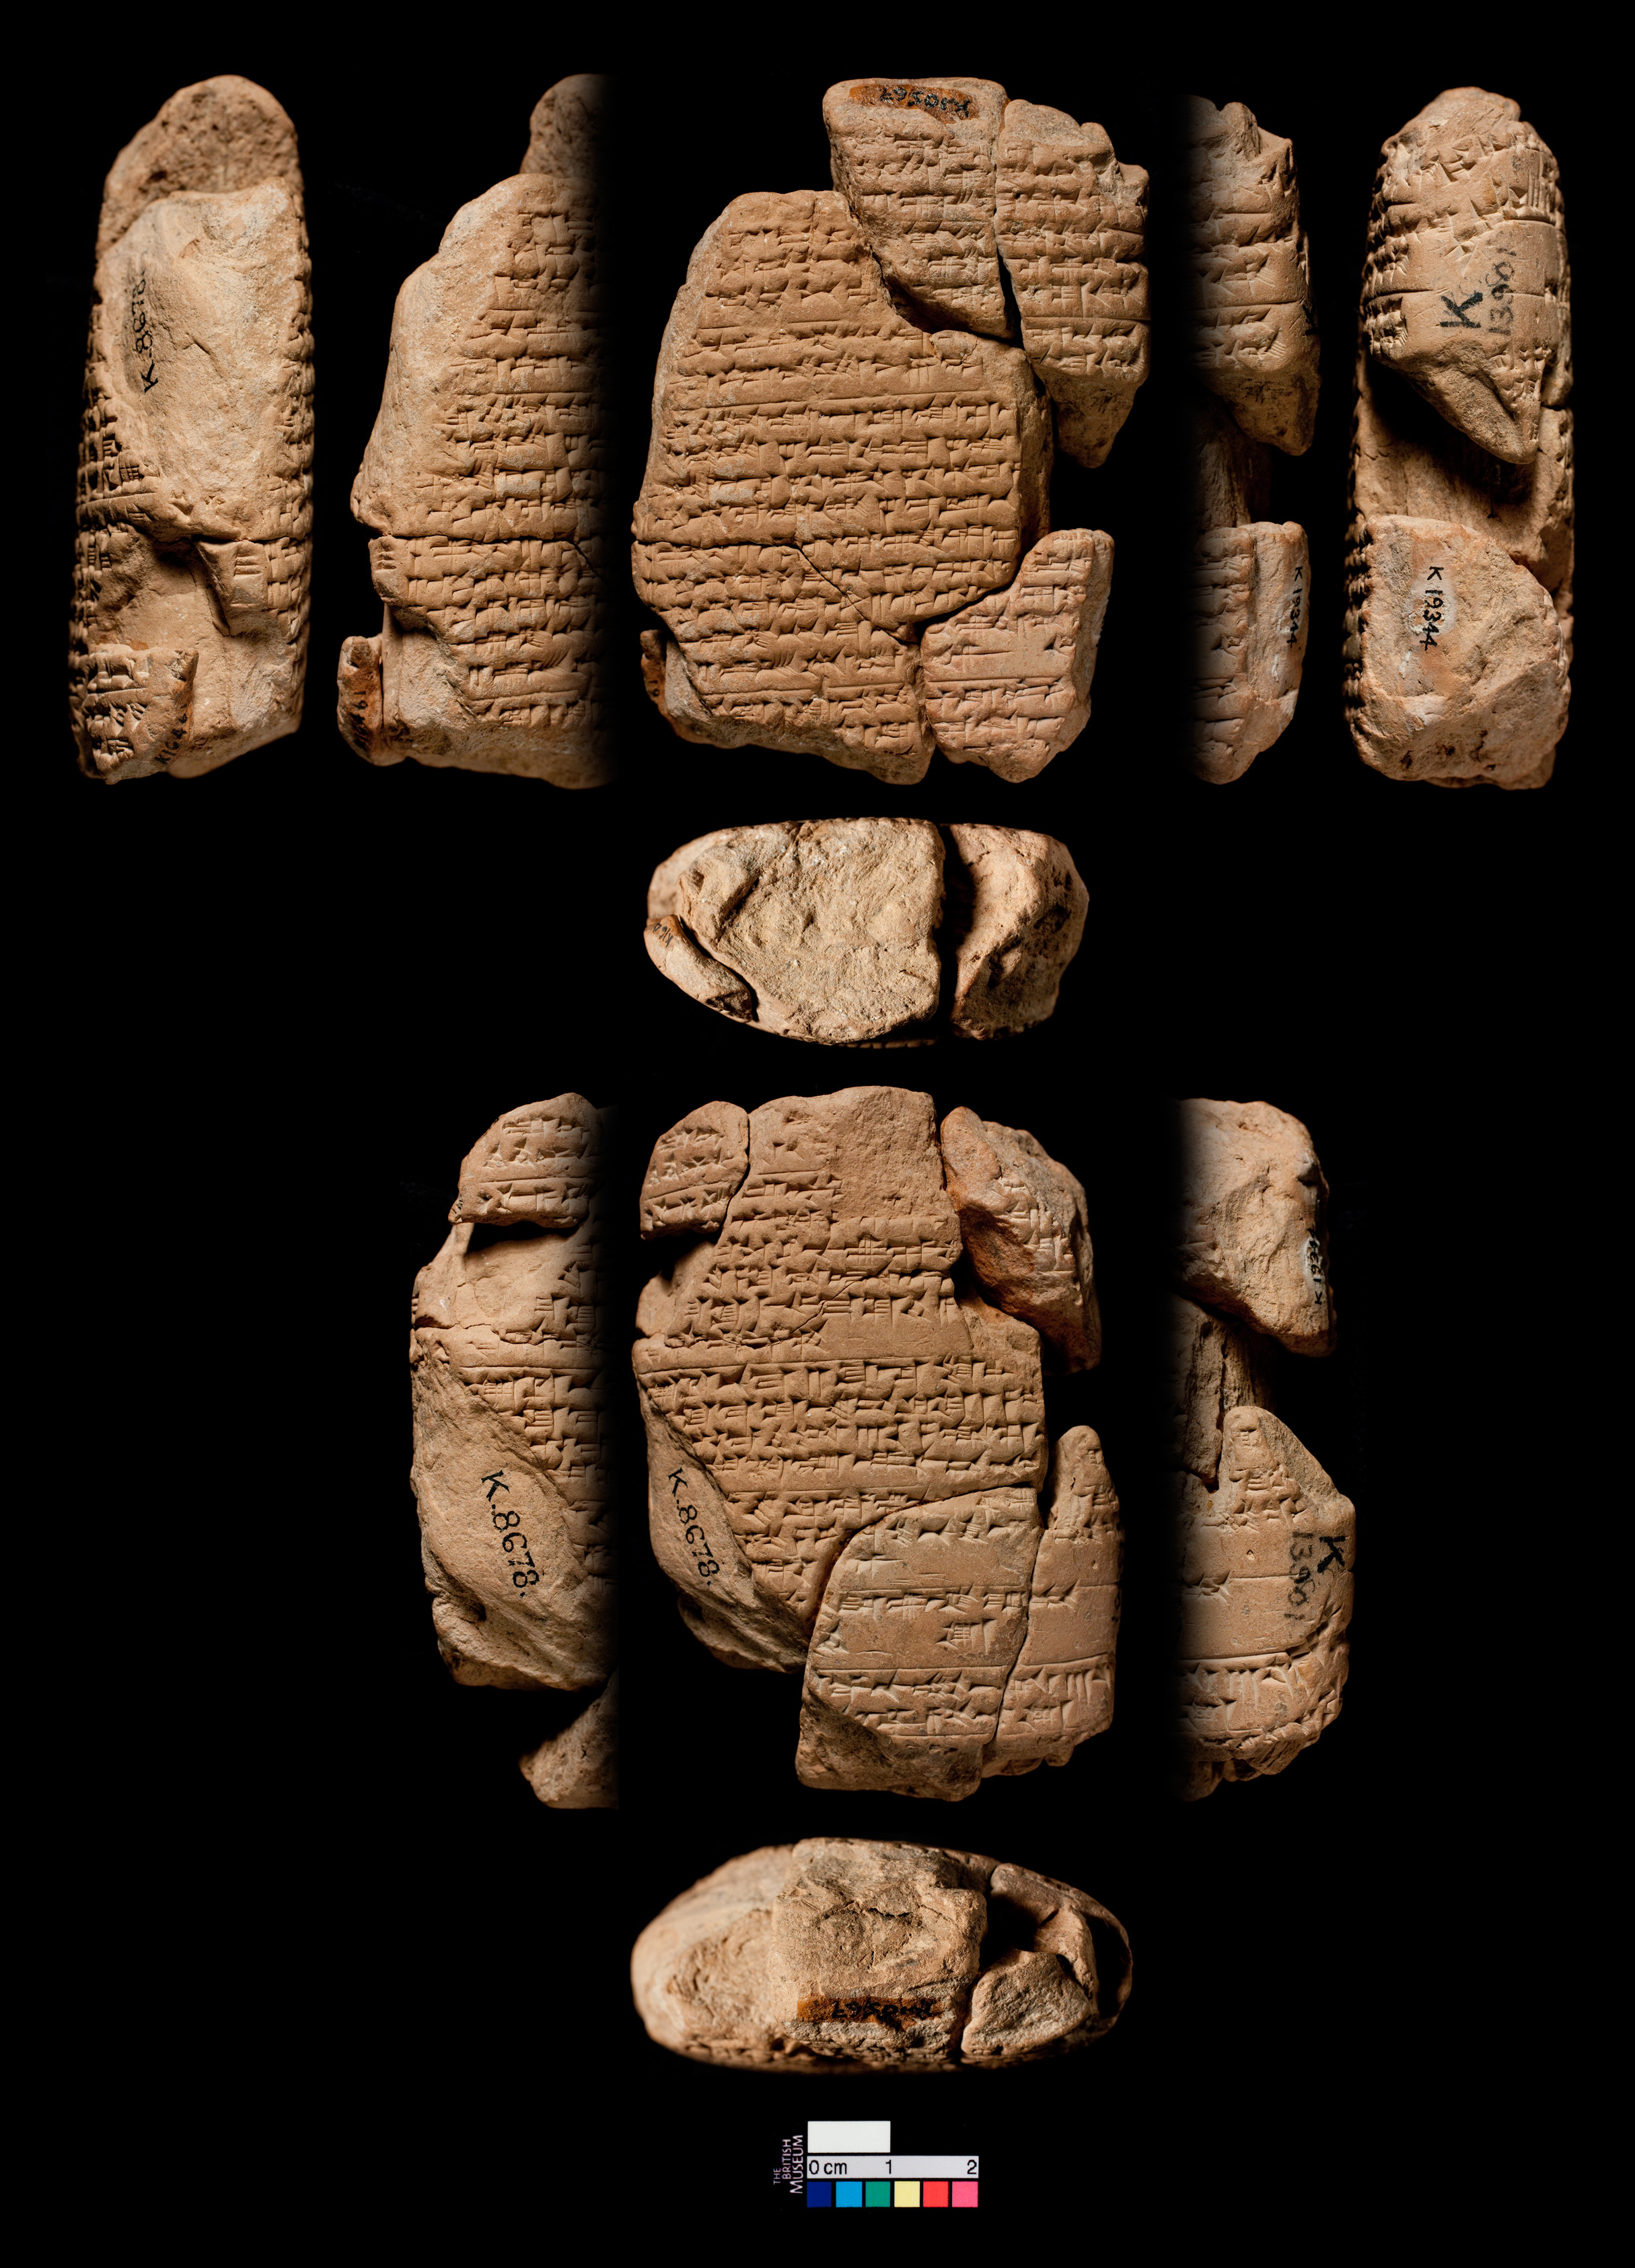 A Babylonian tablet with medical prescriptions for women, ca. 7th cent. BCE. Source: Cuneiform Digital Library Initiative (http://cdli.ucla.edu/dl/ photo/P238756.jpg)